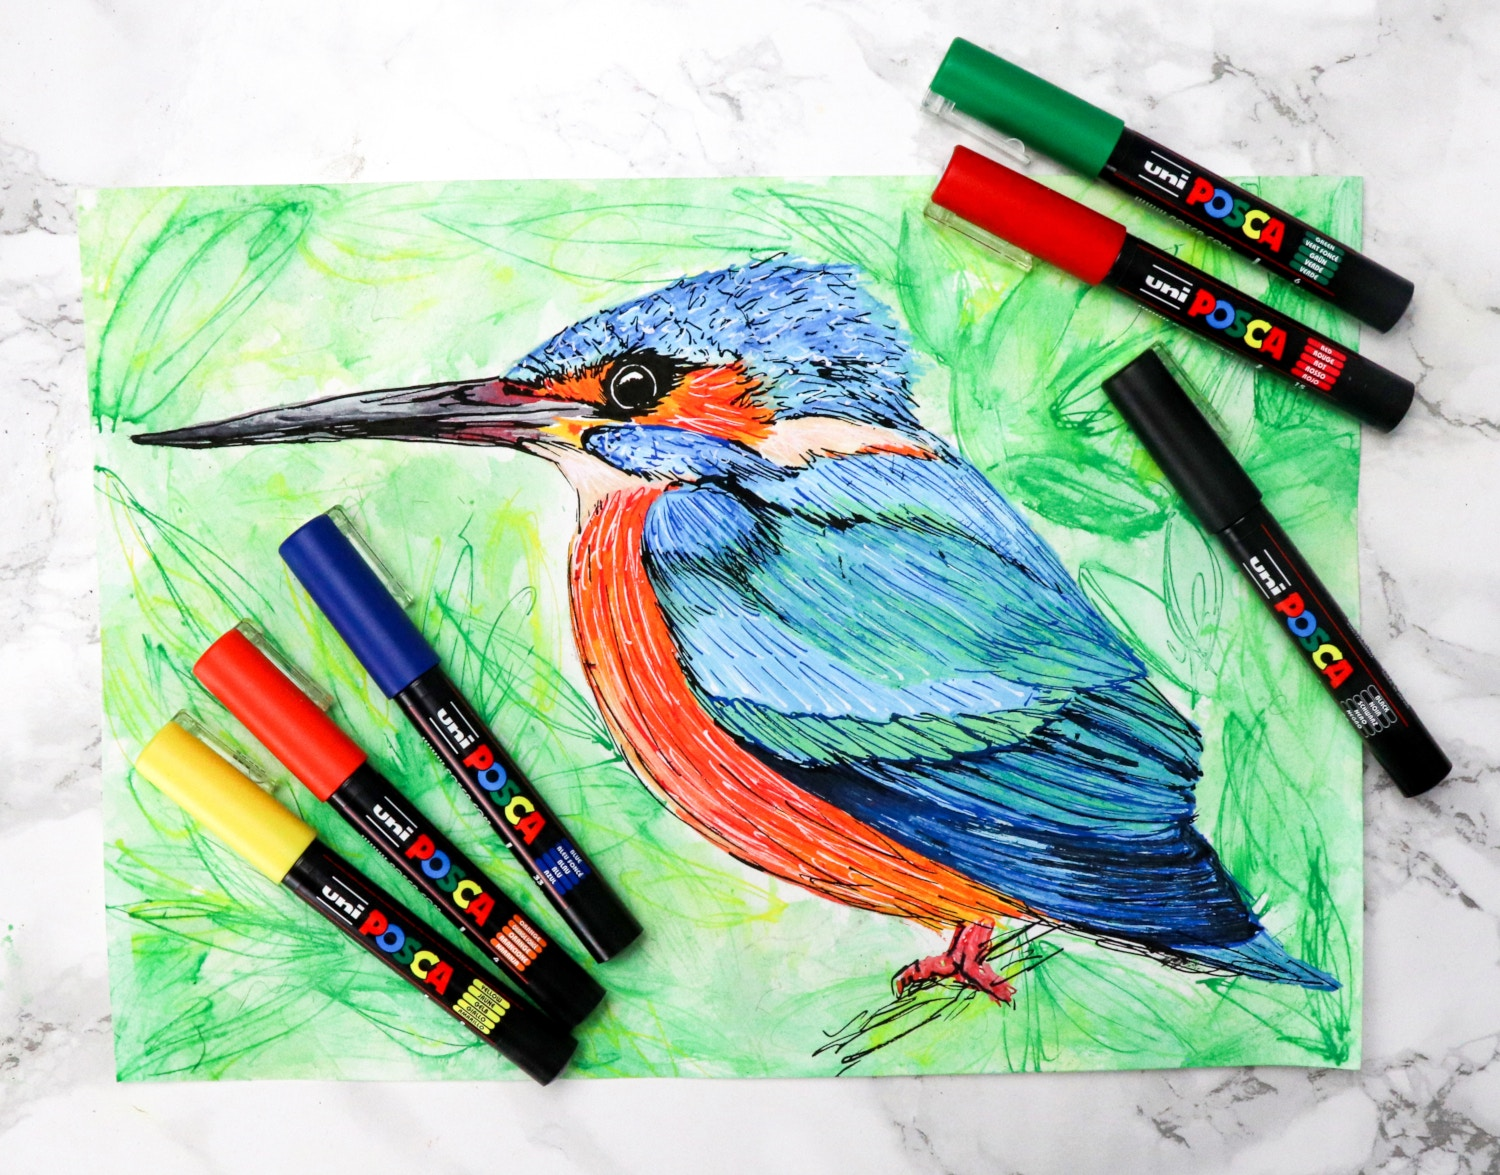 Posca paint marker drawing of a kingfisher